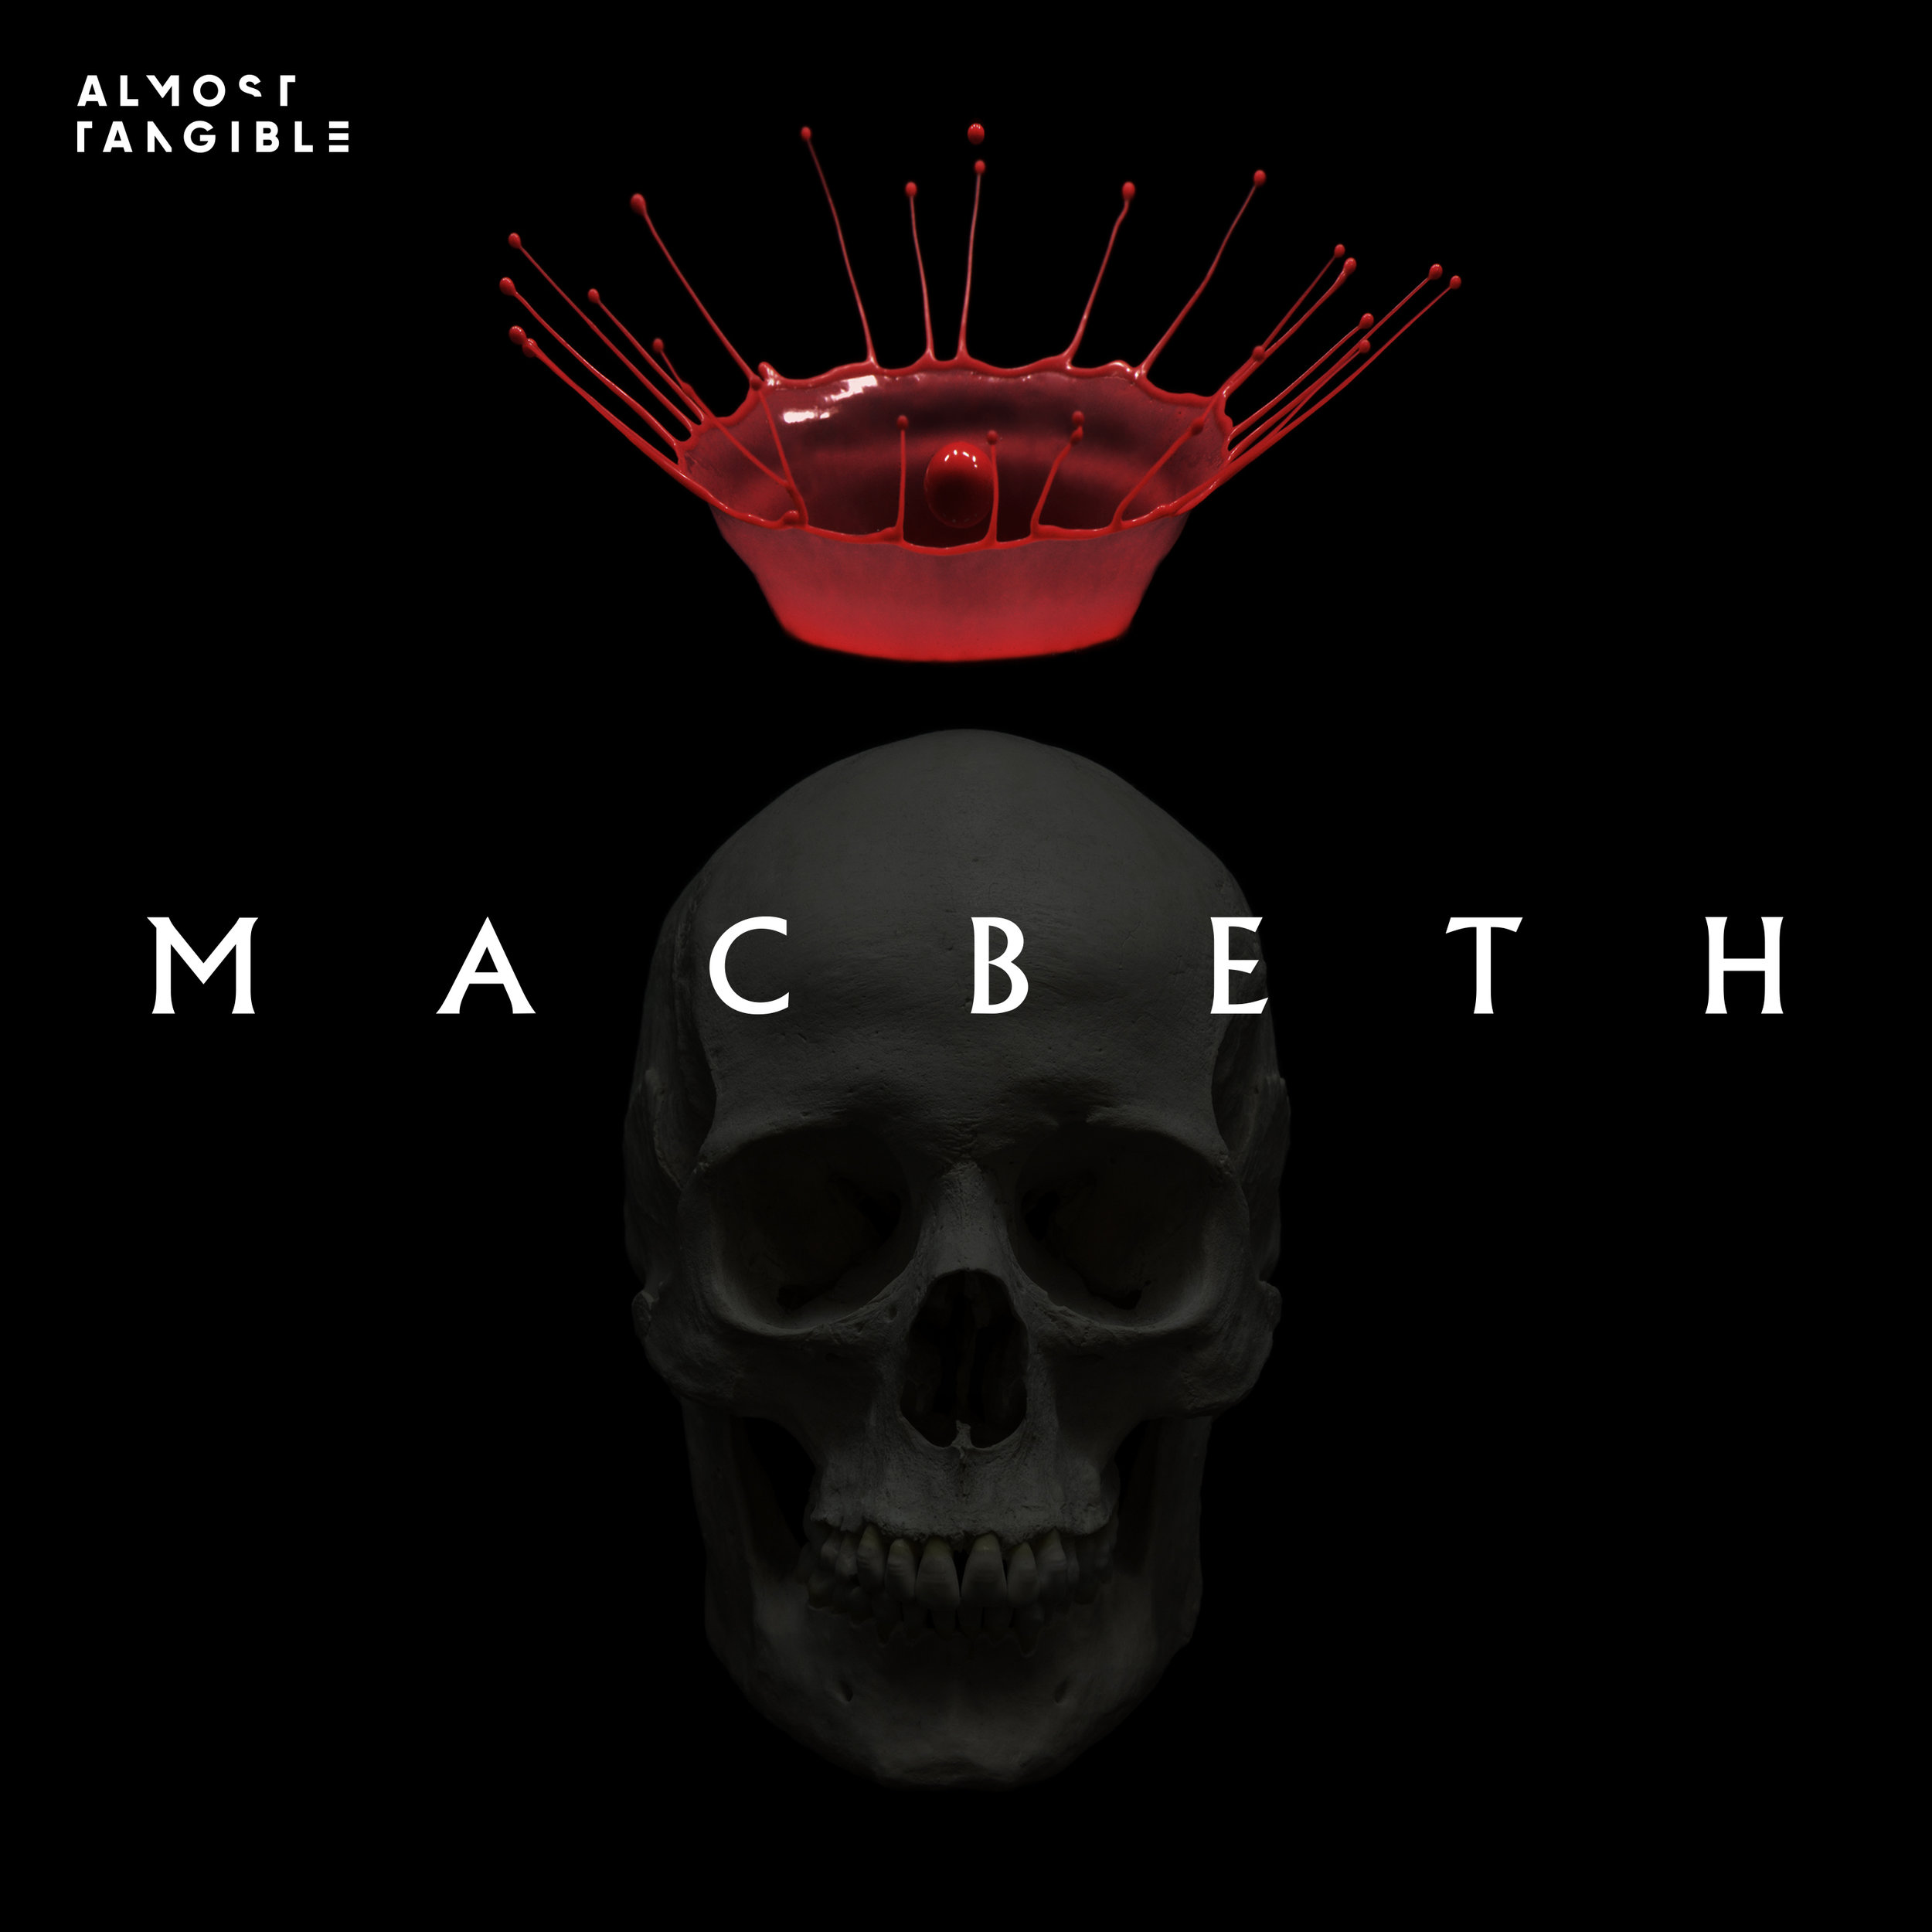 Almost_Tangible_Macbeth_packshot.jpg